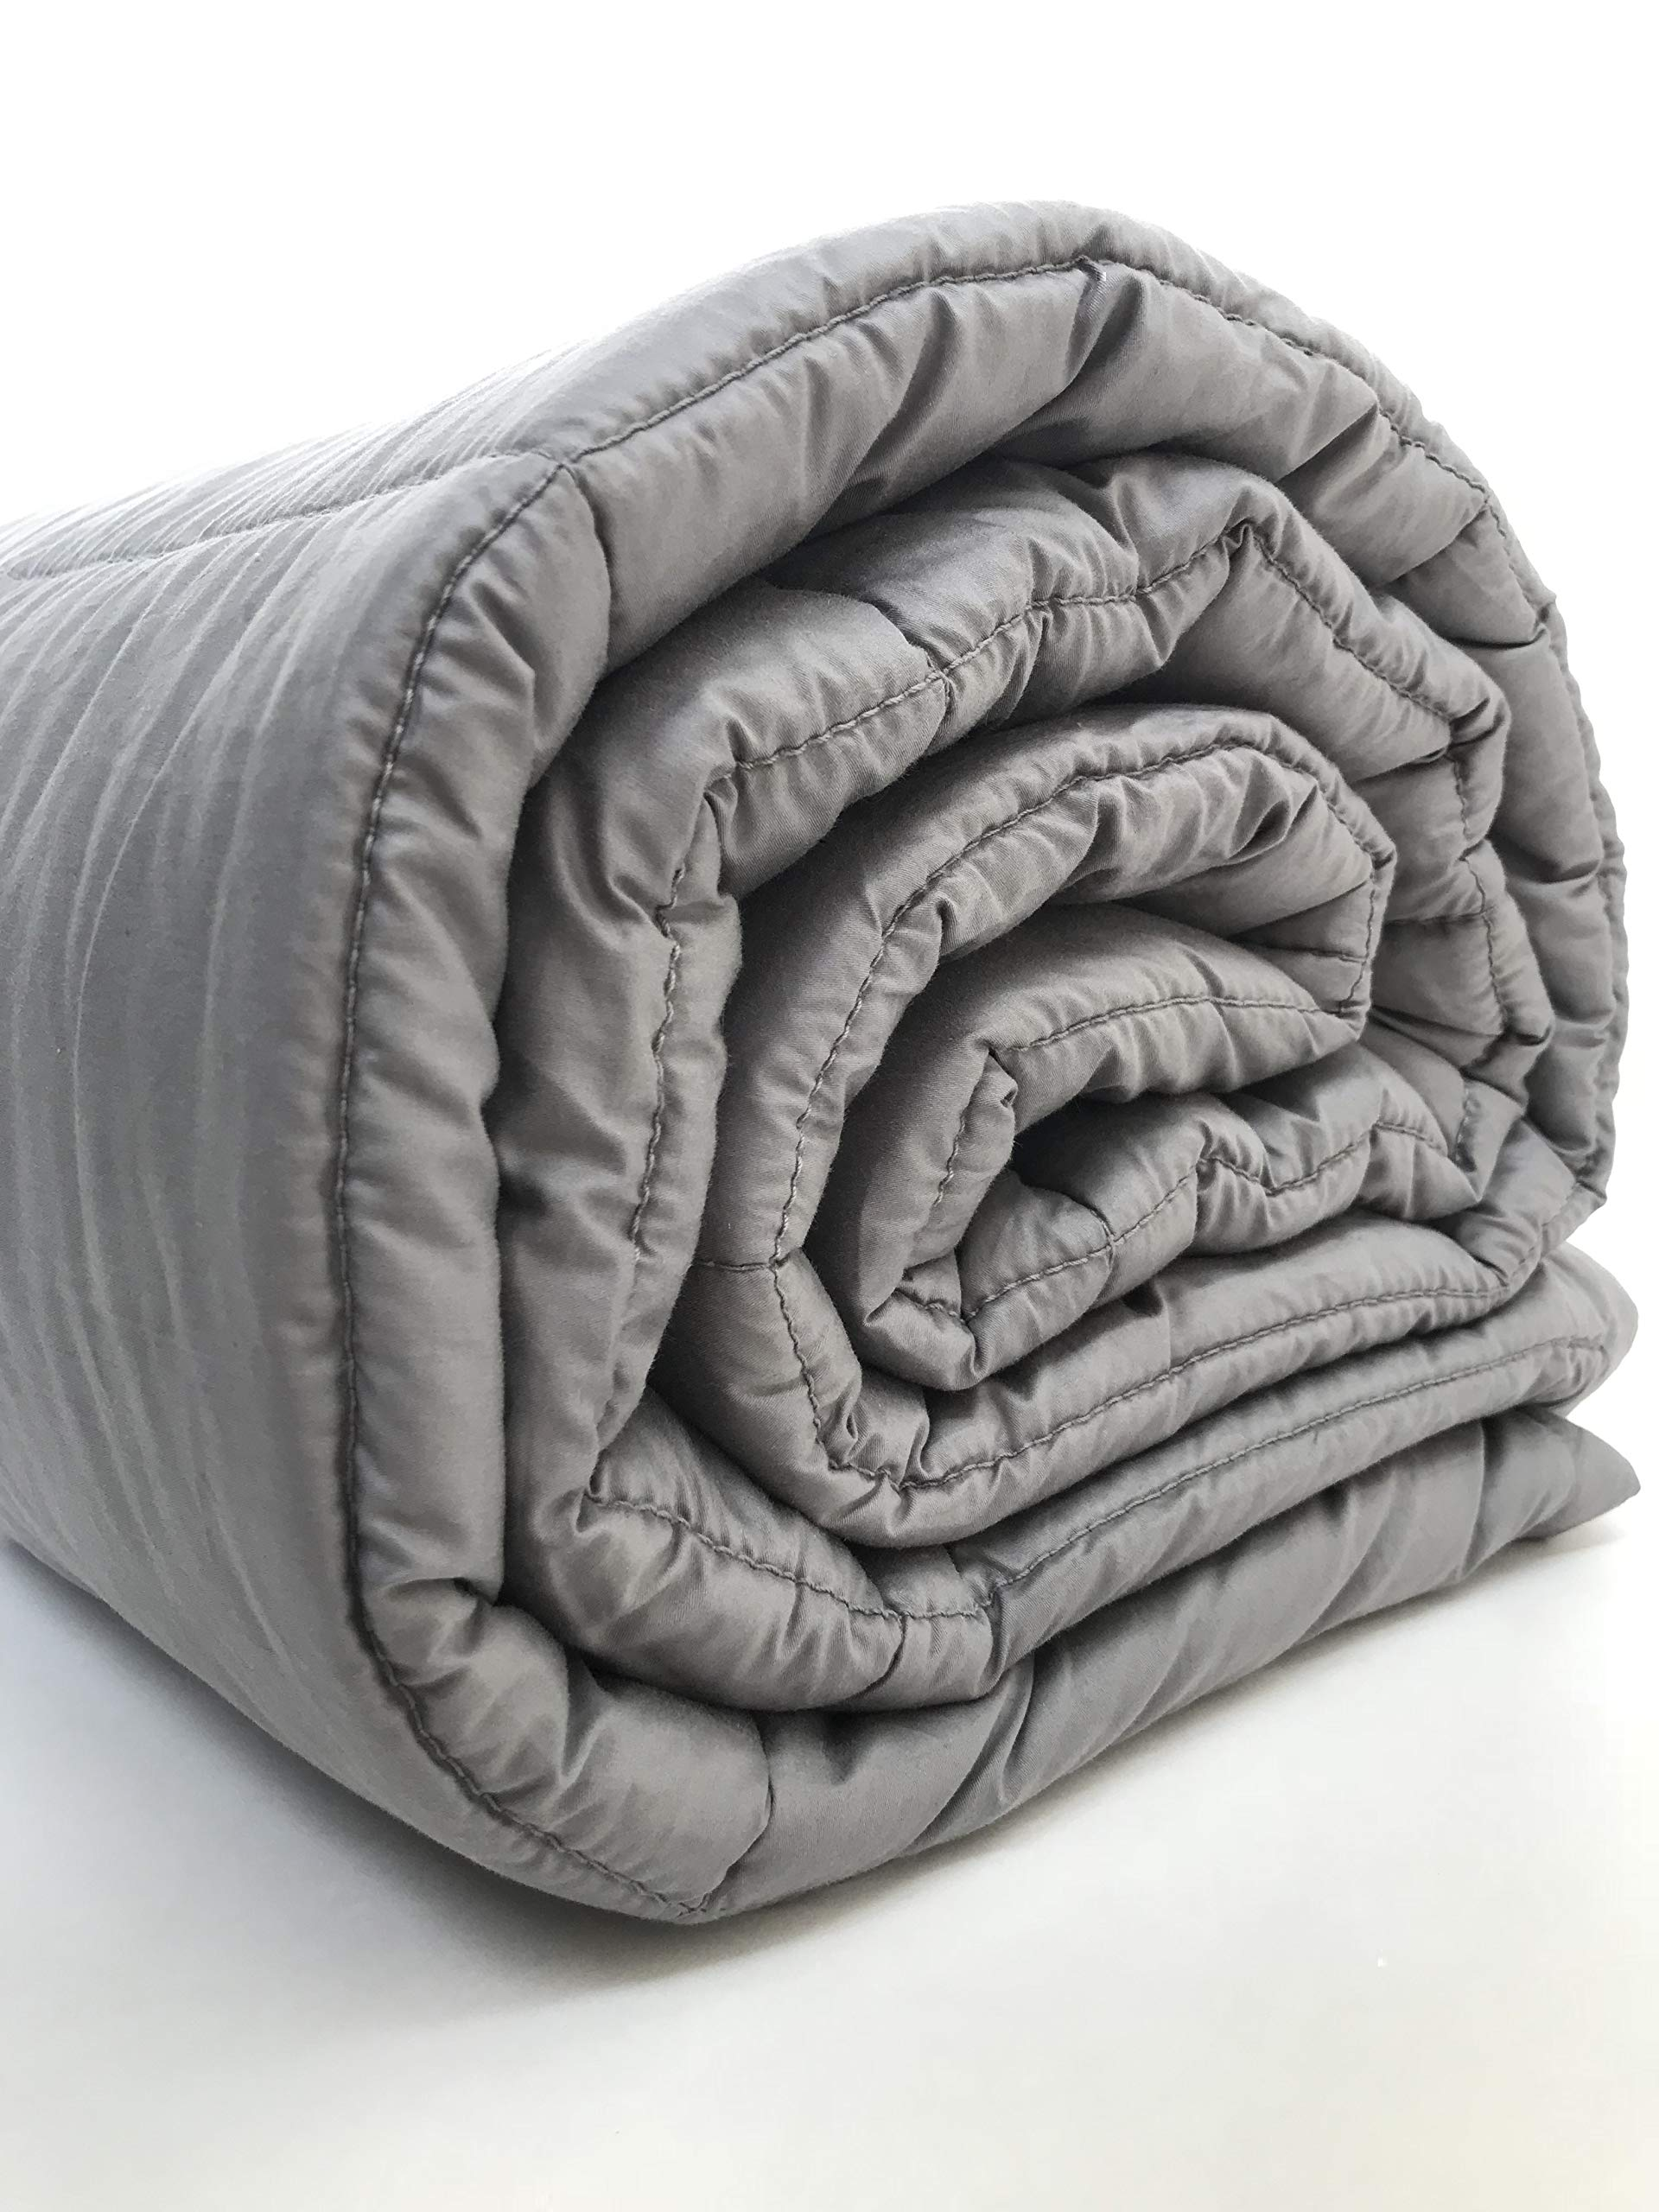 Weighted Blanket 20 lbs 60x80 inches Queen Size - Premium Gravity Heavy Blanket - Great Sleep Therapy for People with Anxiety - Autism - ADHD - Insomnia or Stress - Cotton - Glass Beads